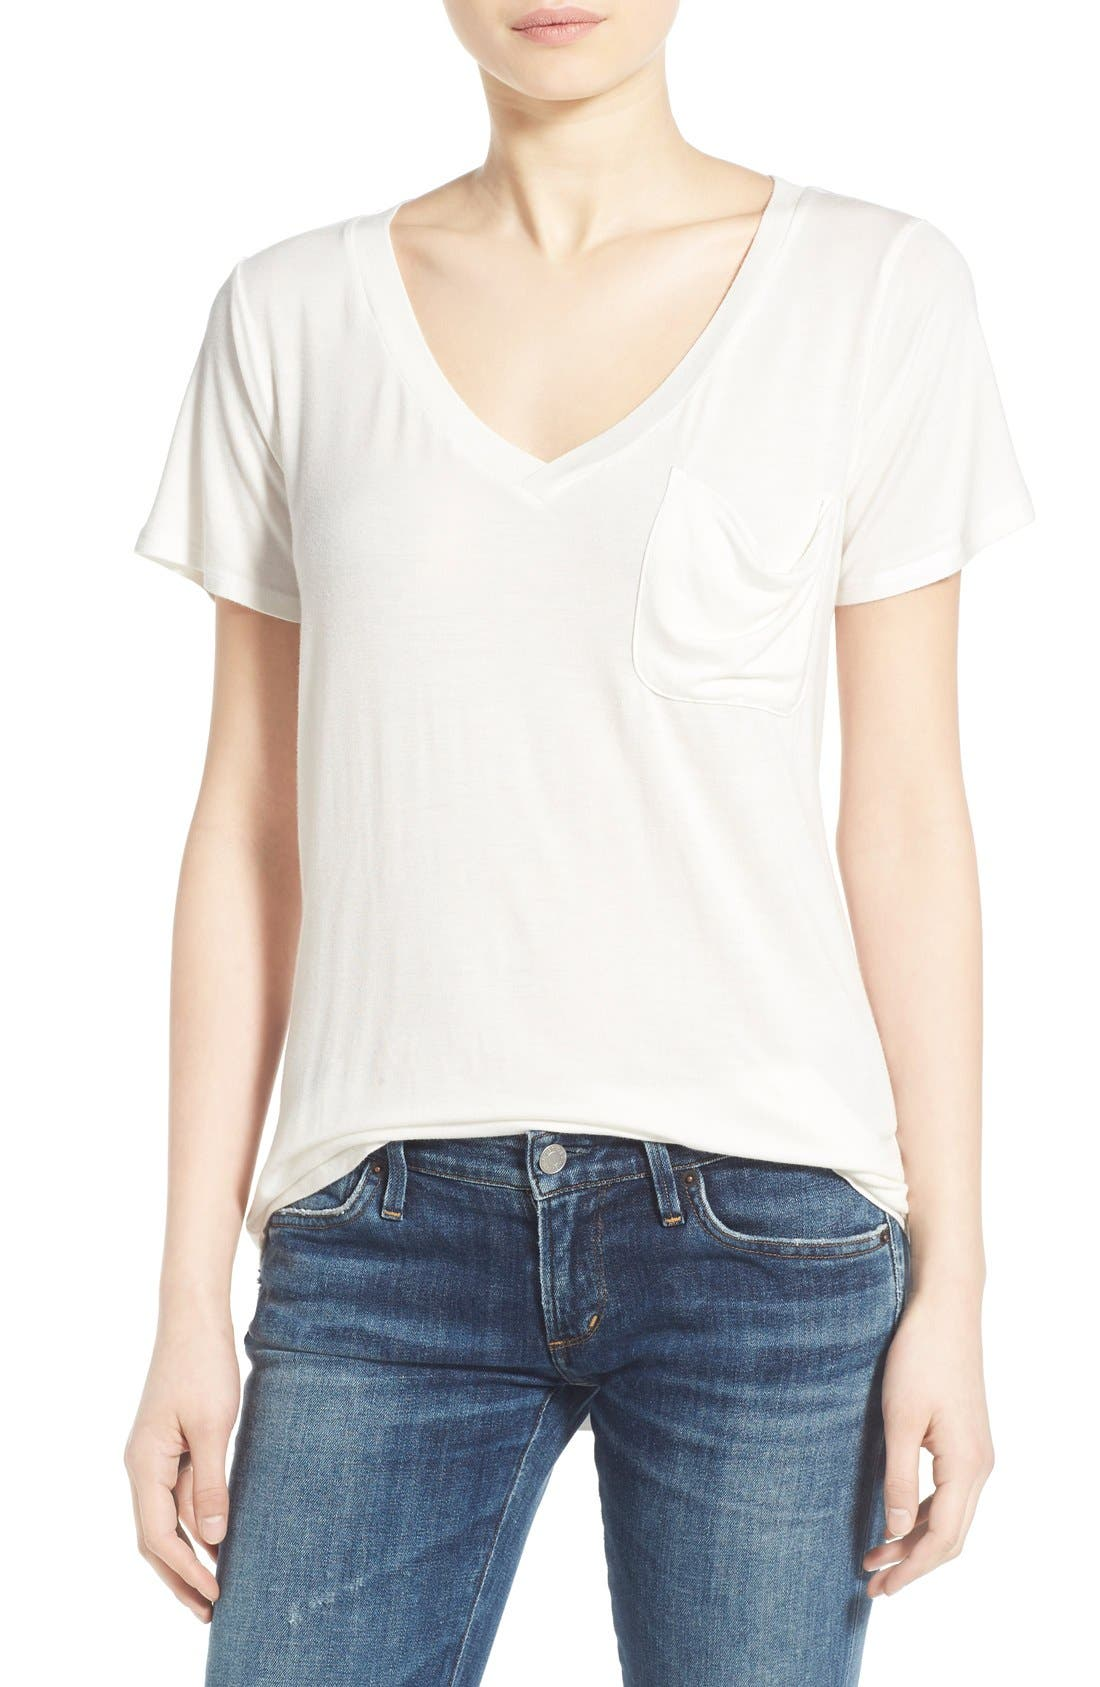 Alternate Image 1 Selected - Socialite V-Neck Pocket Tee